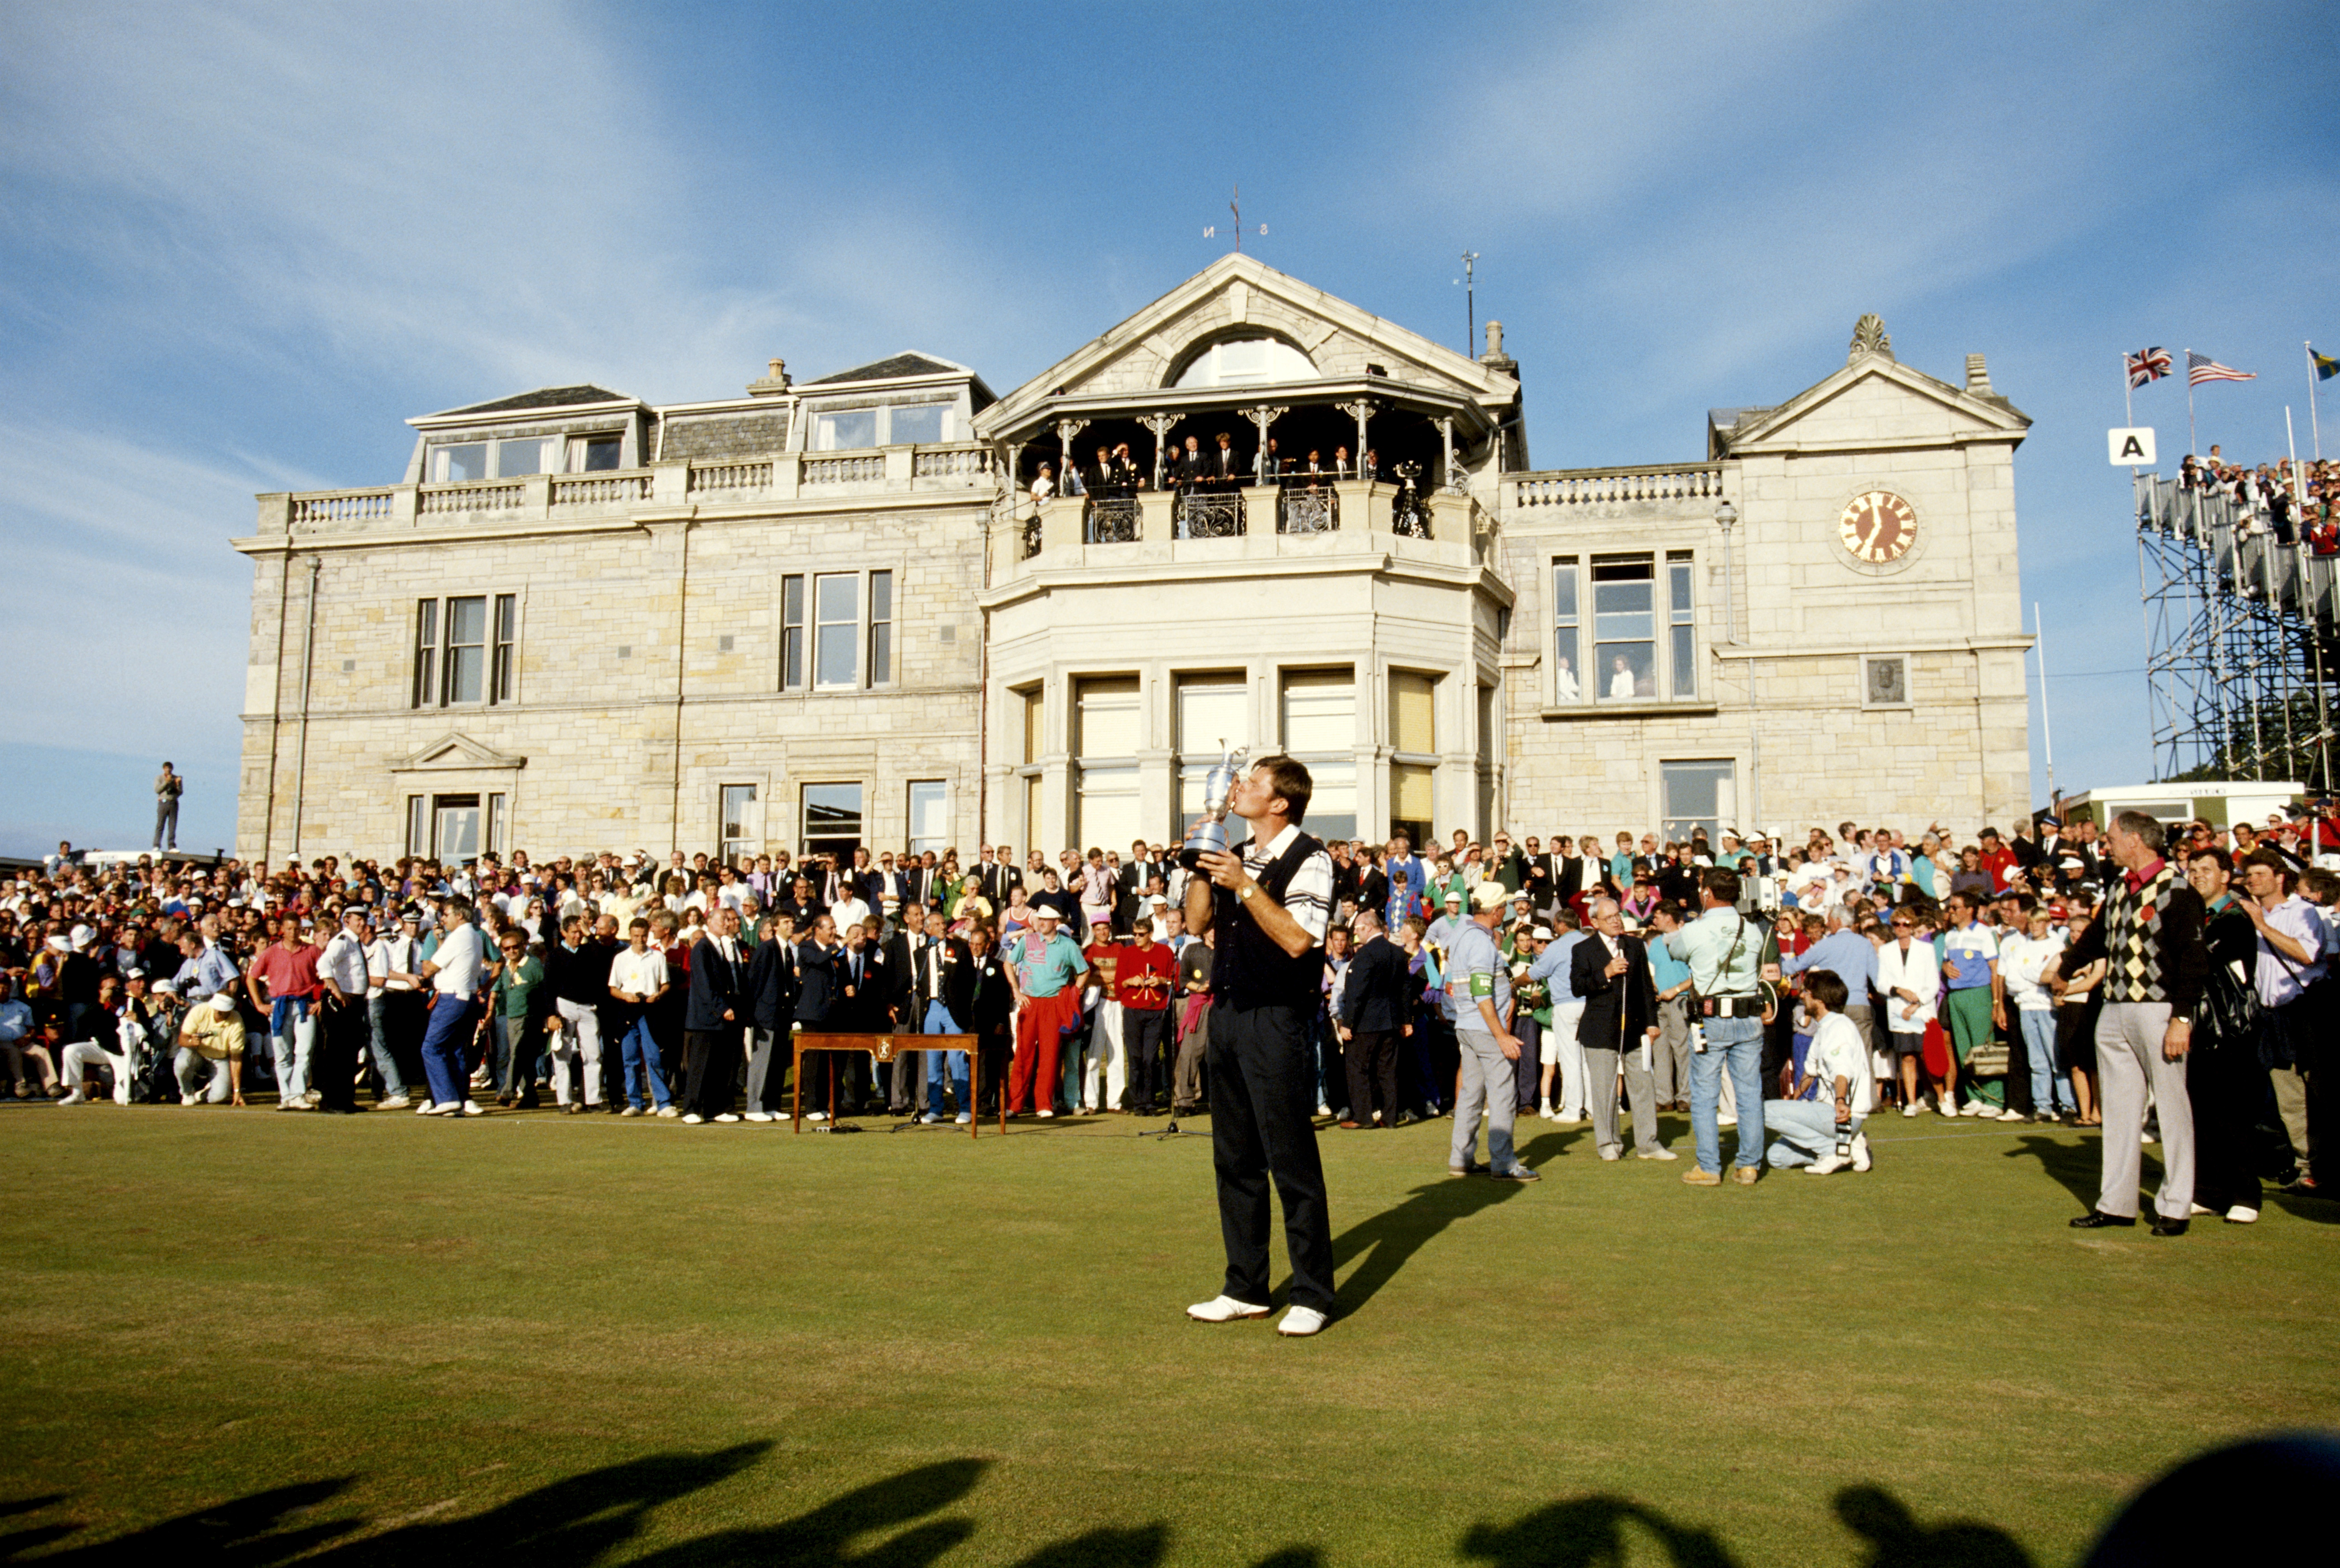 Faldo's second Open triumph came in 1990 when he finished five strokes clear of Mark McNulty and Payne Stewart at St Andrews. It came just three months after he scored back-to-back Masters titles and was his fourth major victory. (Photo: Getty Images)